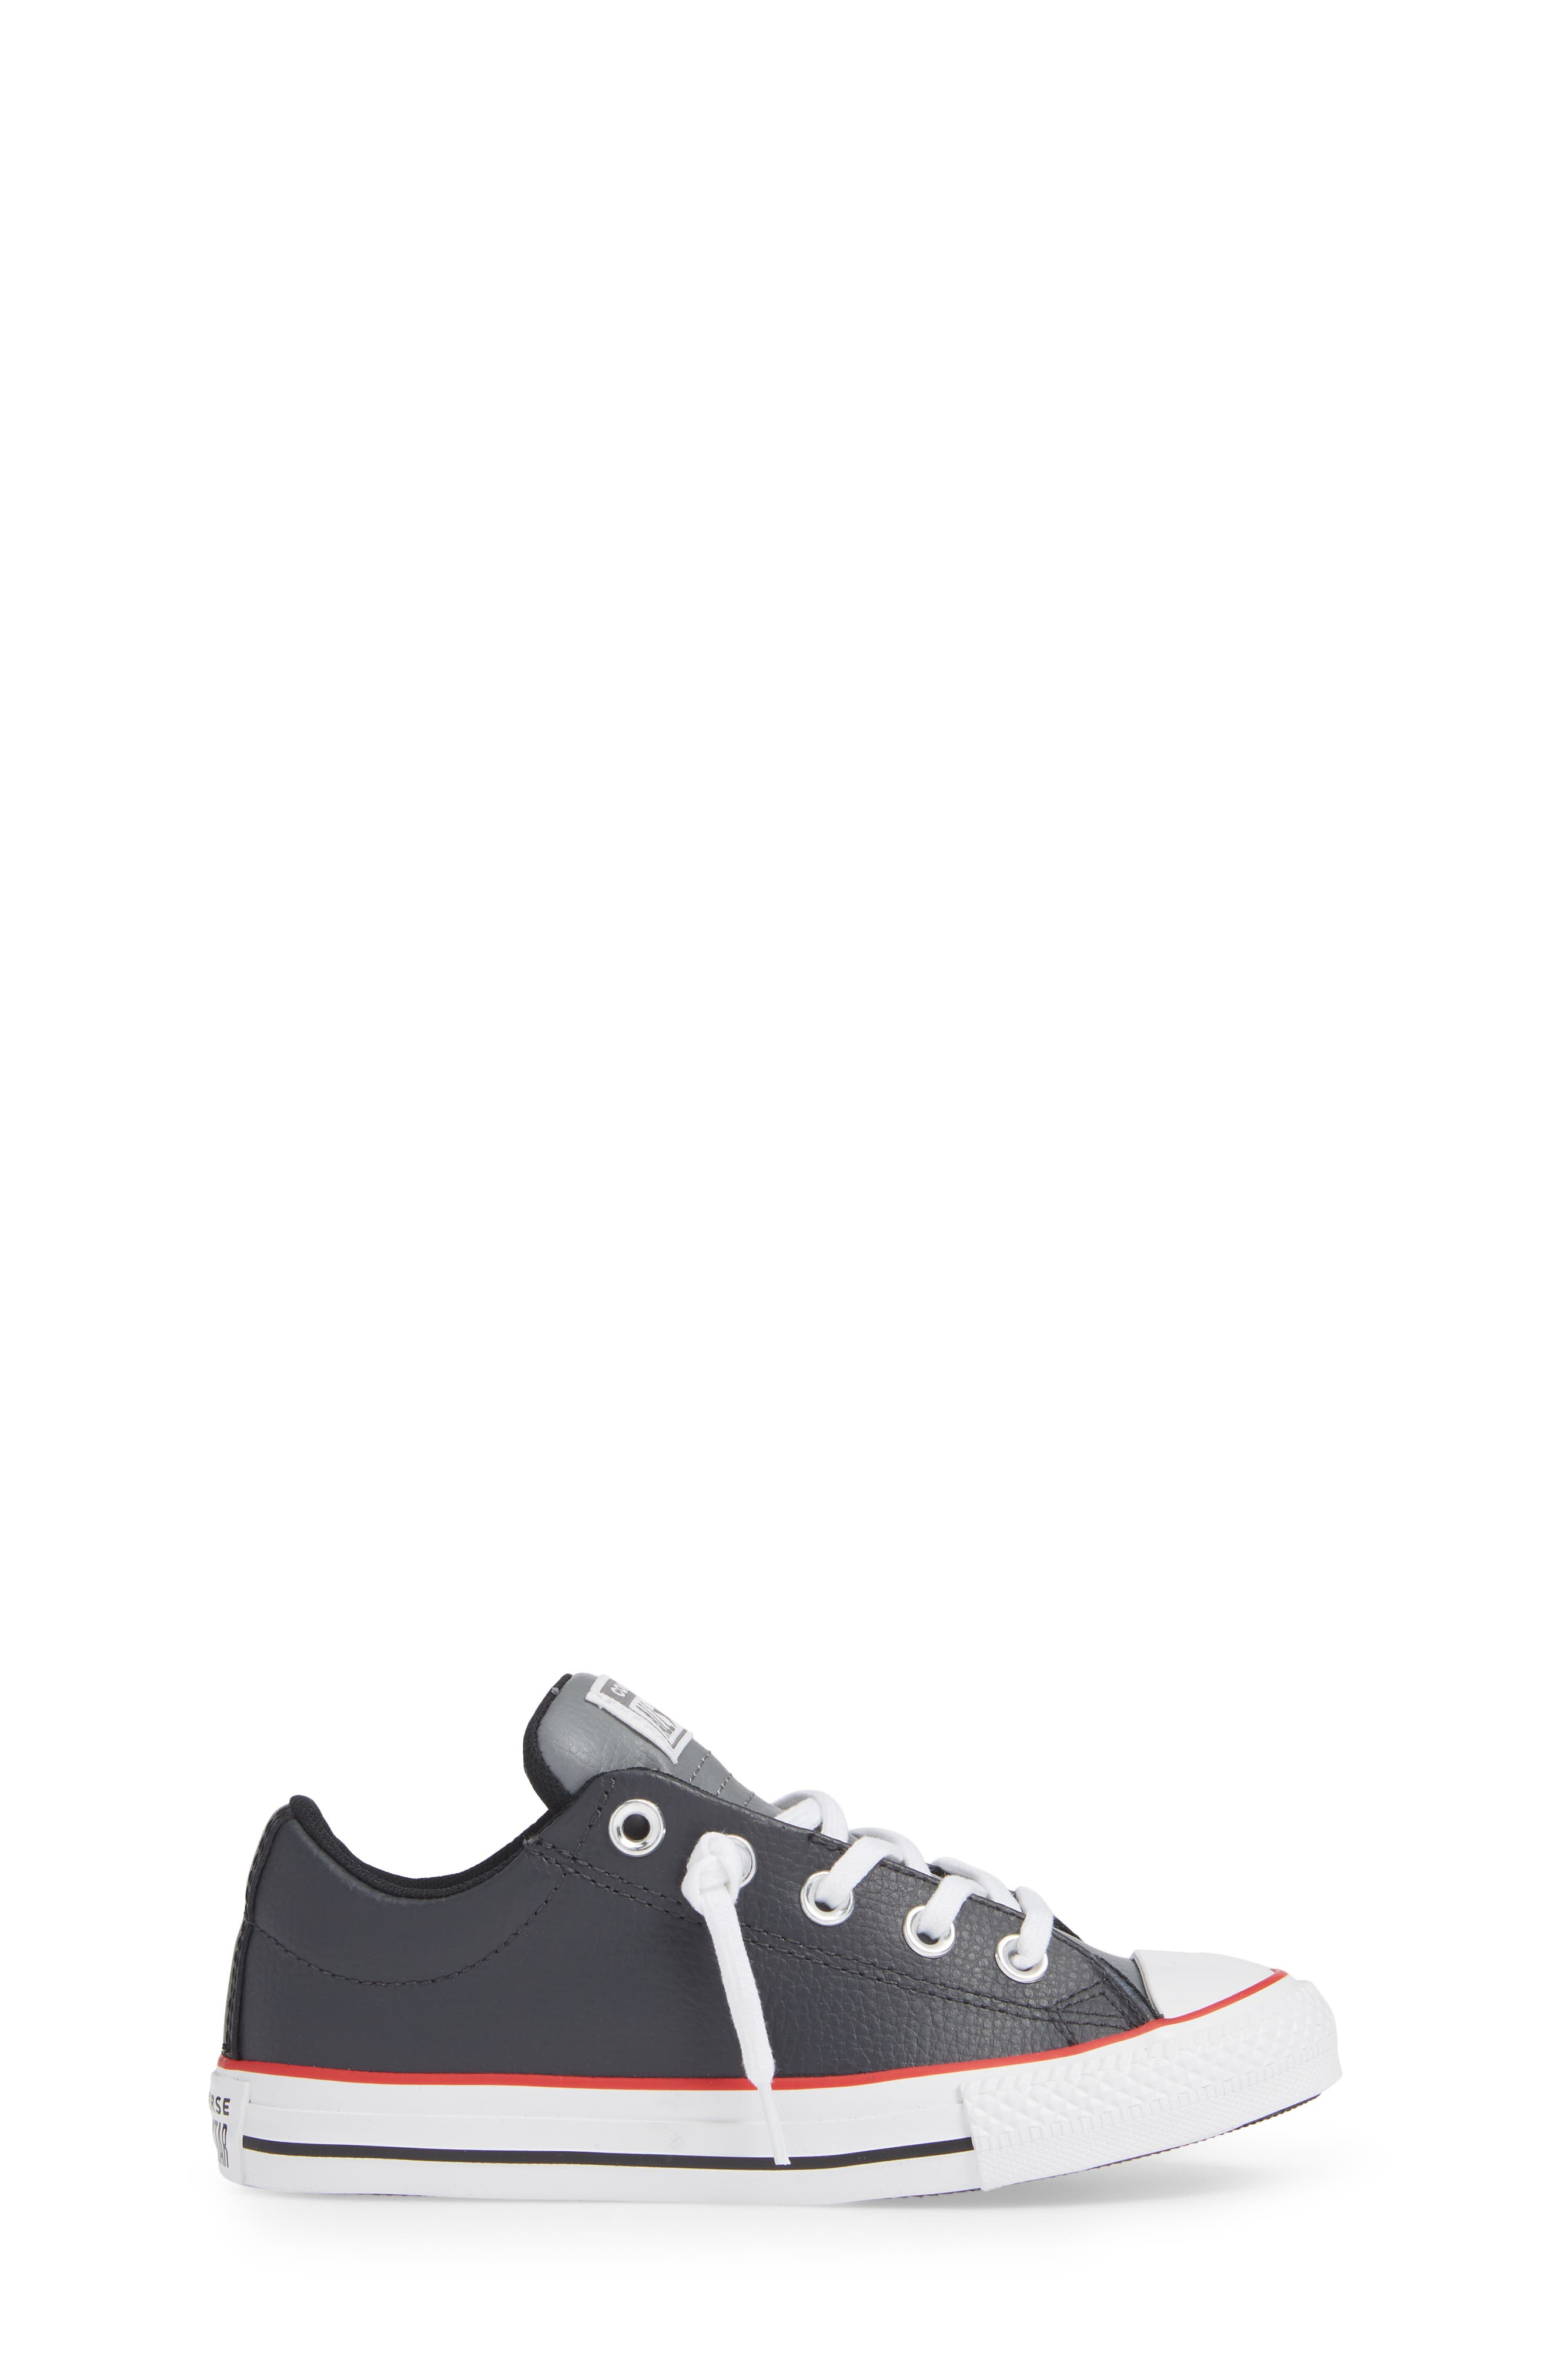 CONVERSE, Chuck Taylor<sup>®</sup> All Star<sup>®</sup> Collegiate Street Leather Slip-On Sneaker, Alternate thumbnail 3, color, ALMOST BLACK